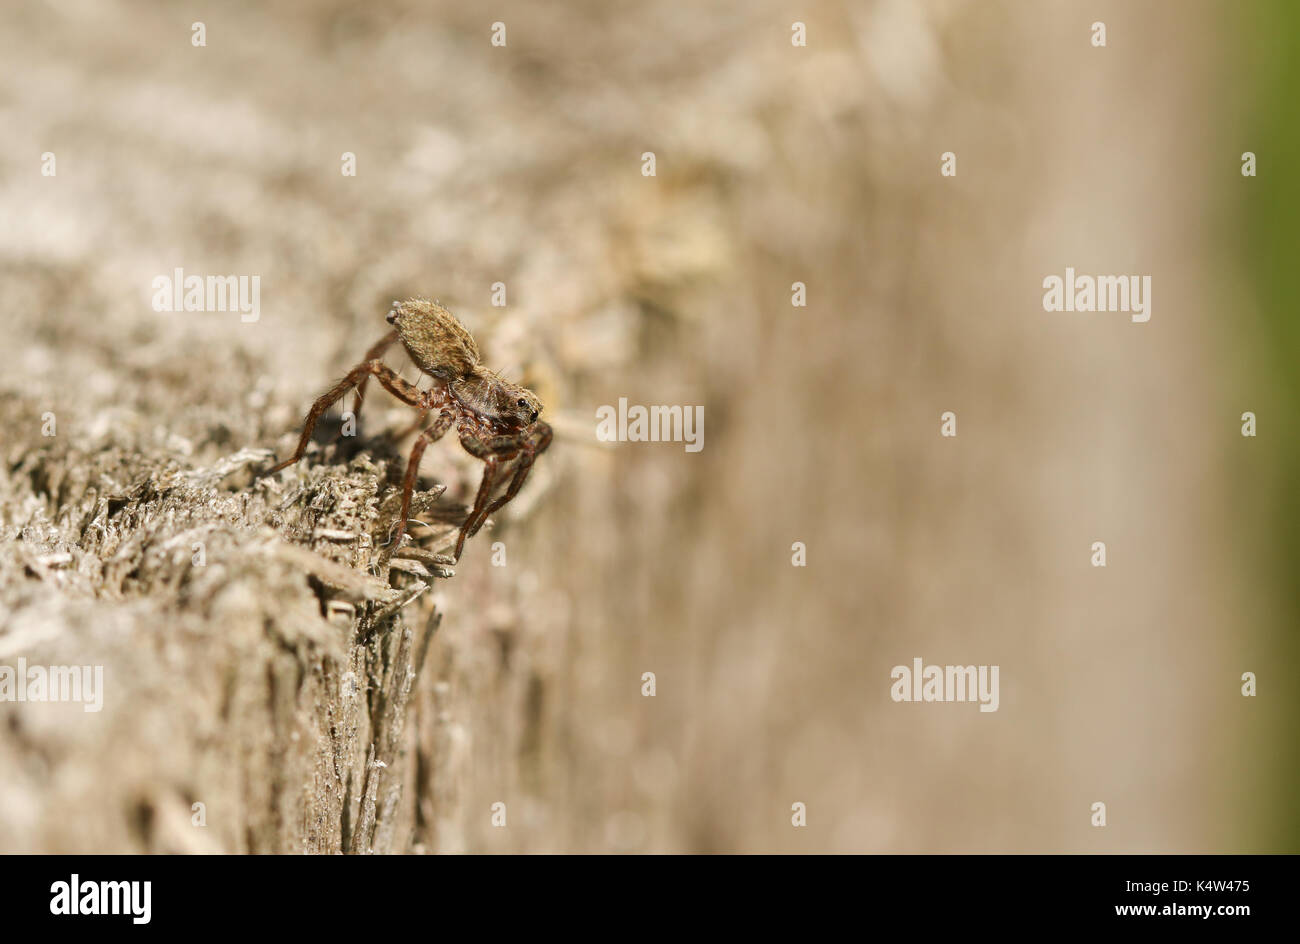 A hunting Wolf spider (Pardosa). - Stock Image